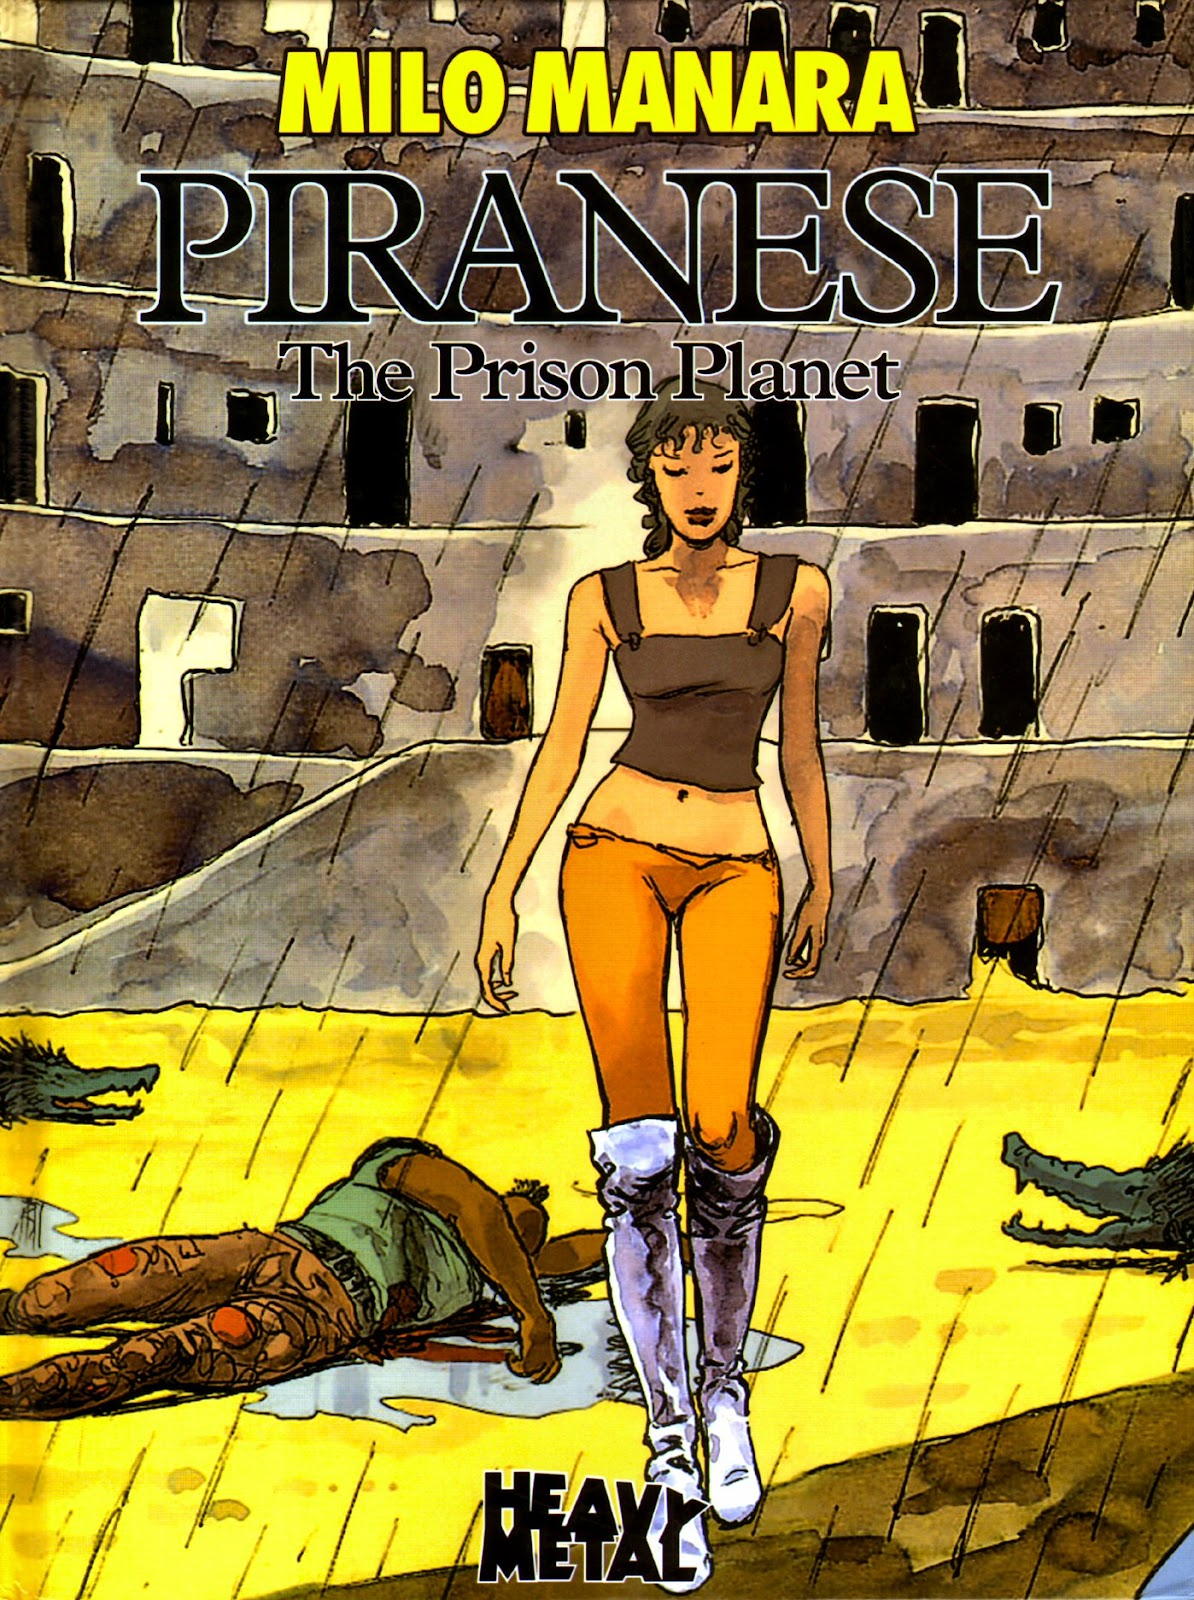 Read online Piranese The Prison Planet comic -  Issue # Full - 1